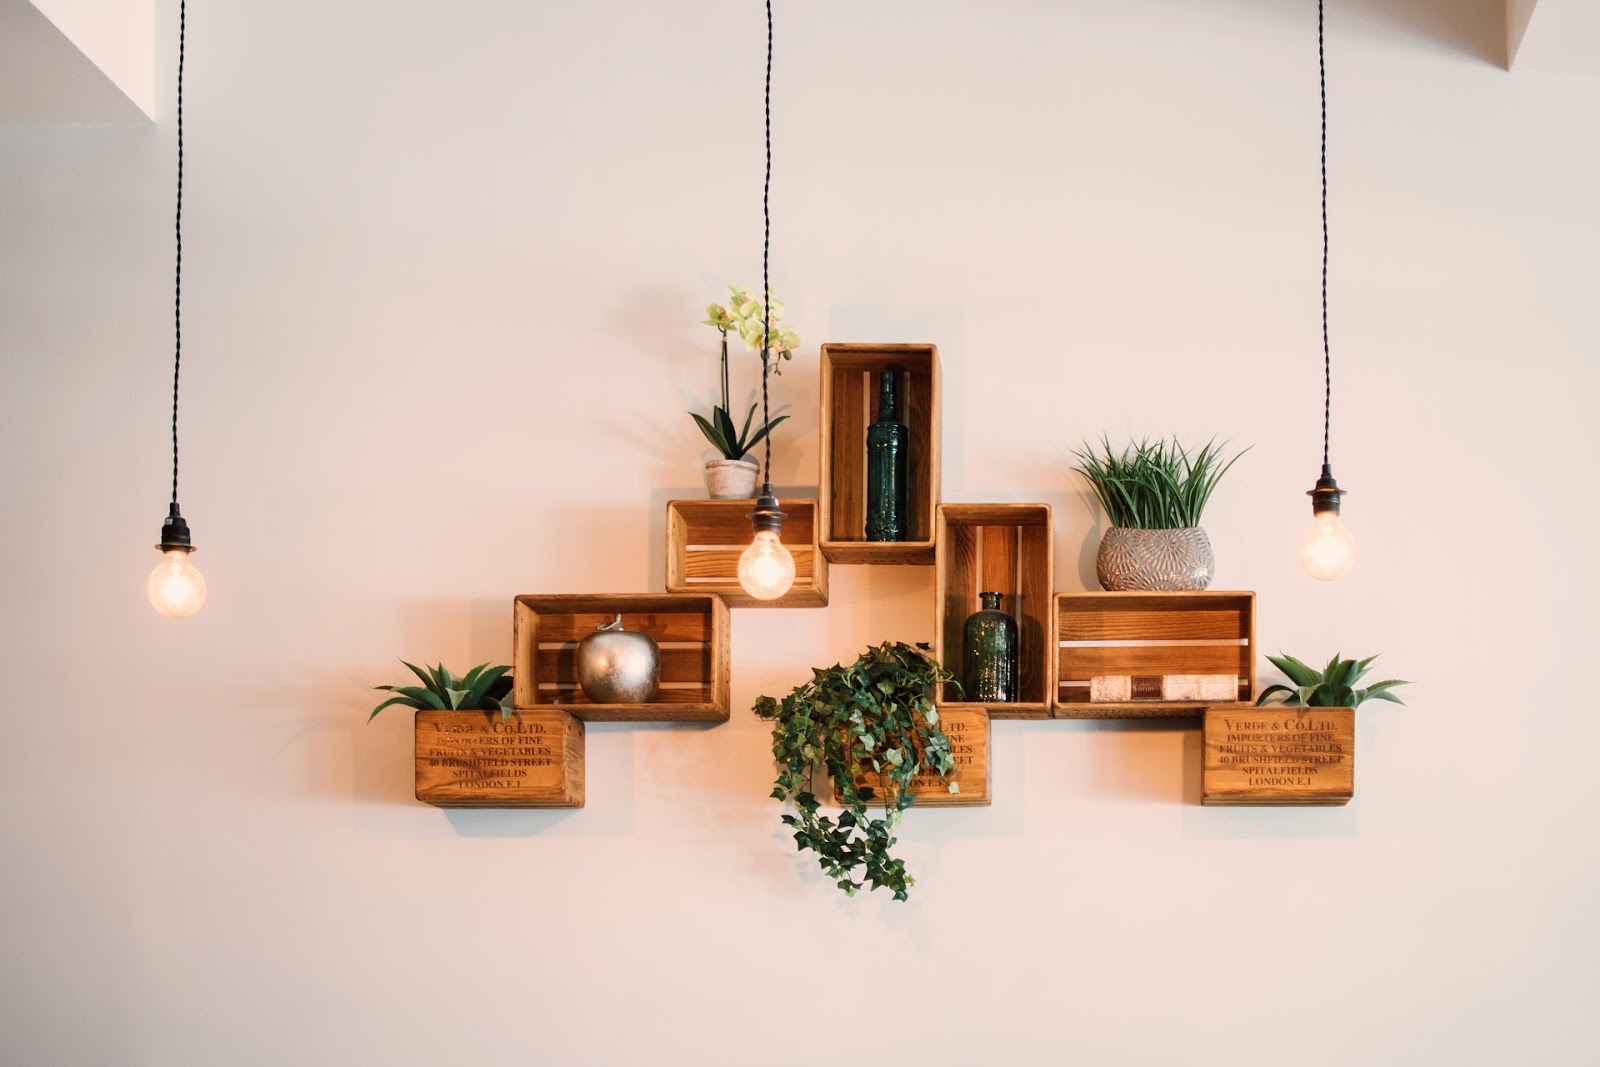 Plants on shelves for relaxing and balancing home decor.